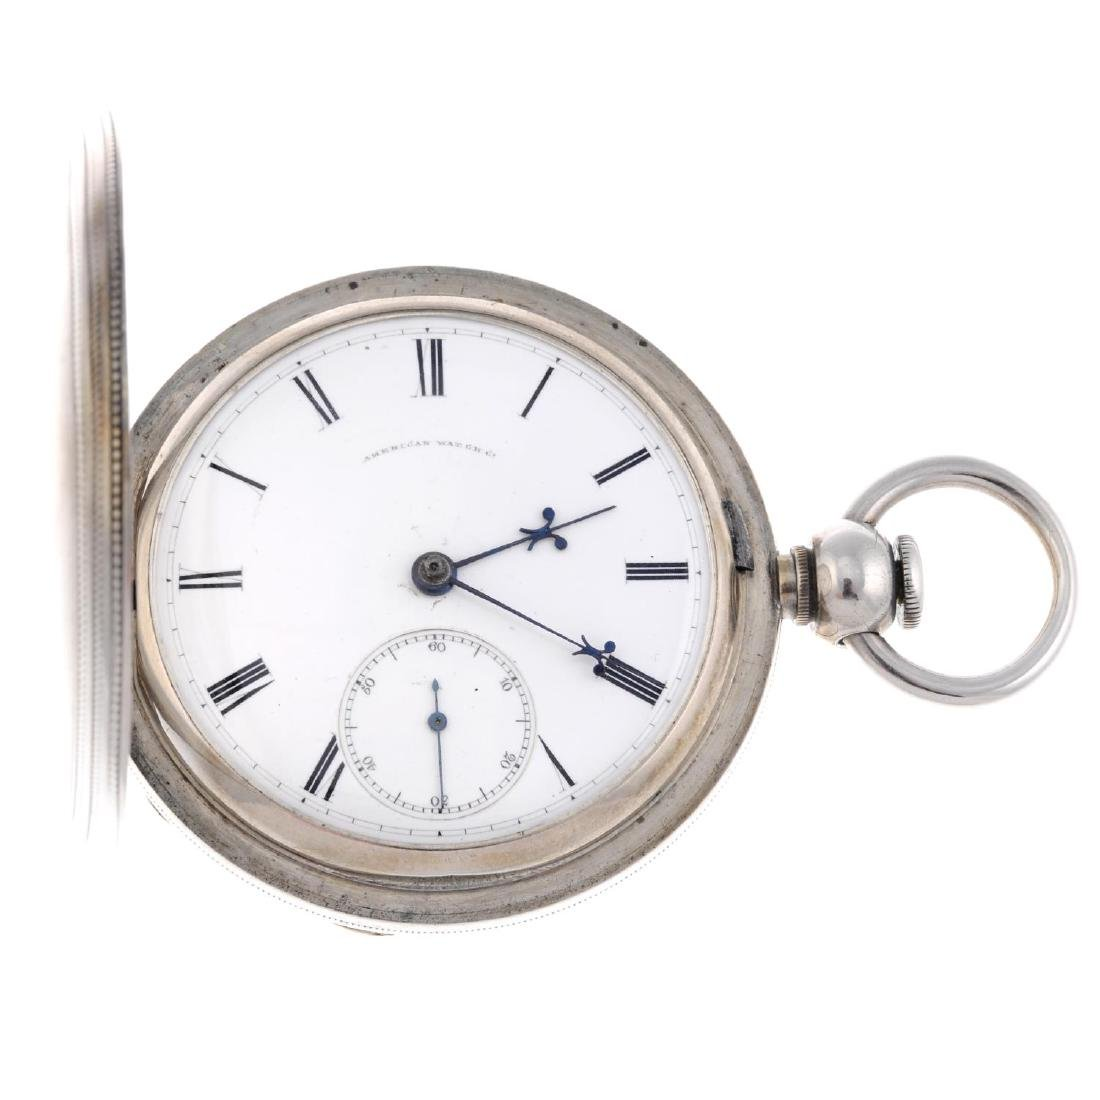 A full hunter pocket watch by Waltham. White metal